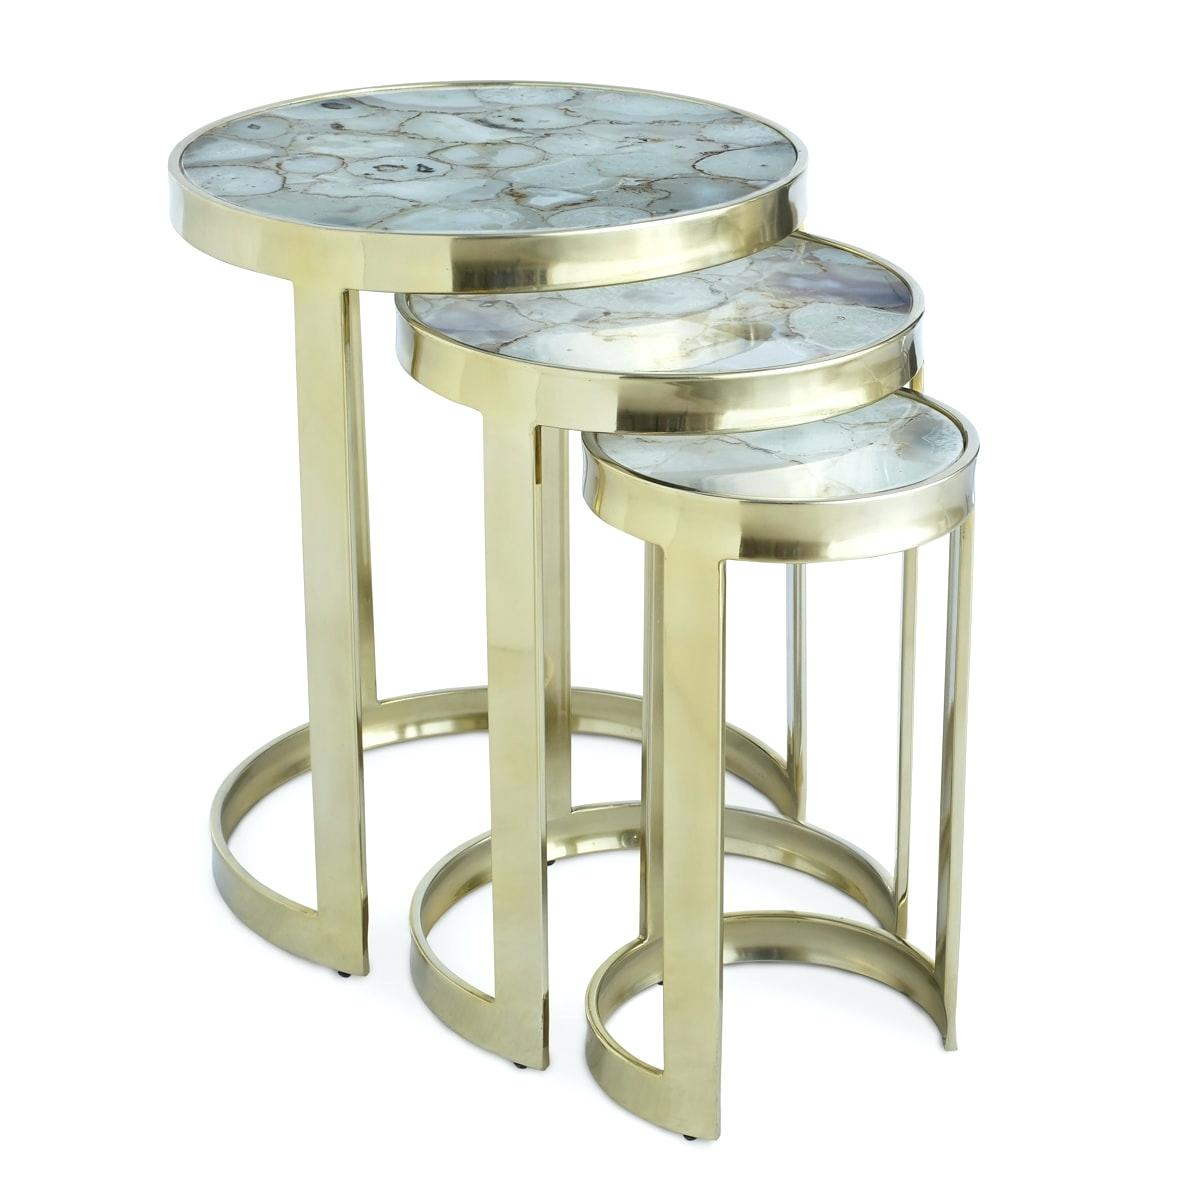 agate end table ecocentrism nesting tables set diy accent with built side blue living room furniture large tilting patio umbrella small adjustable legs brass glass solid wood